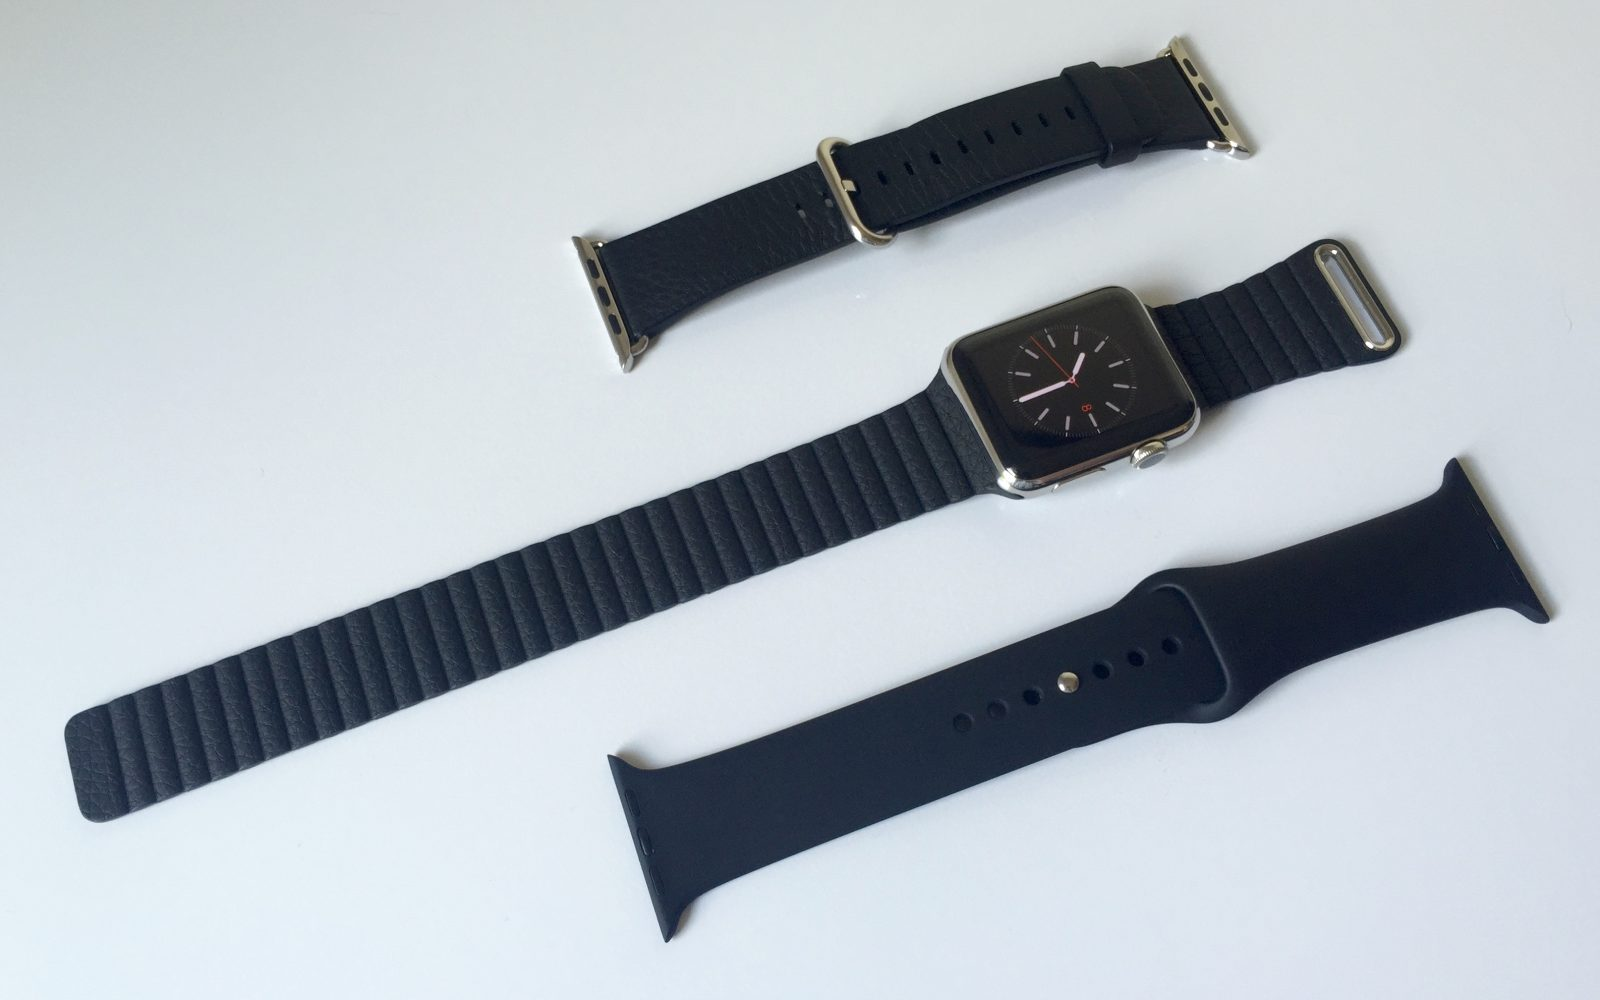 376792e0e Hands-on: Apple Watch standalone bands, packaging, & swapping - 9to5Mac